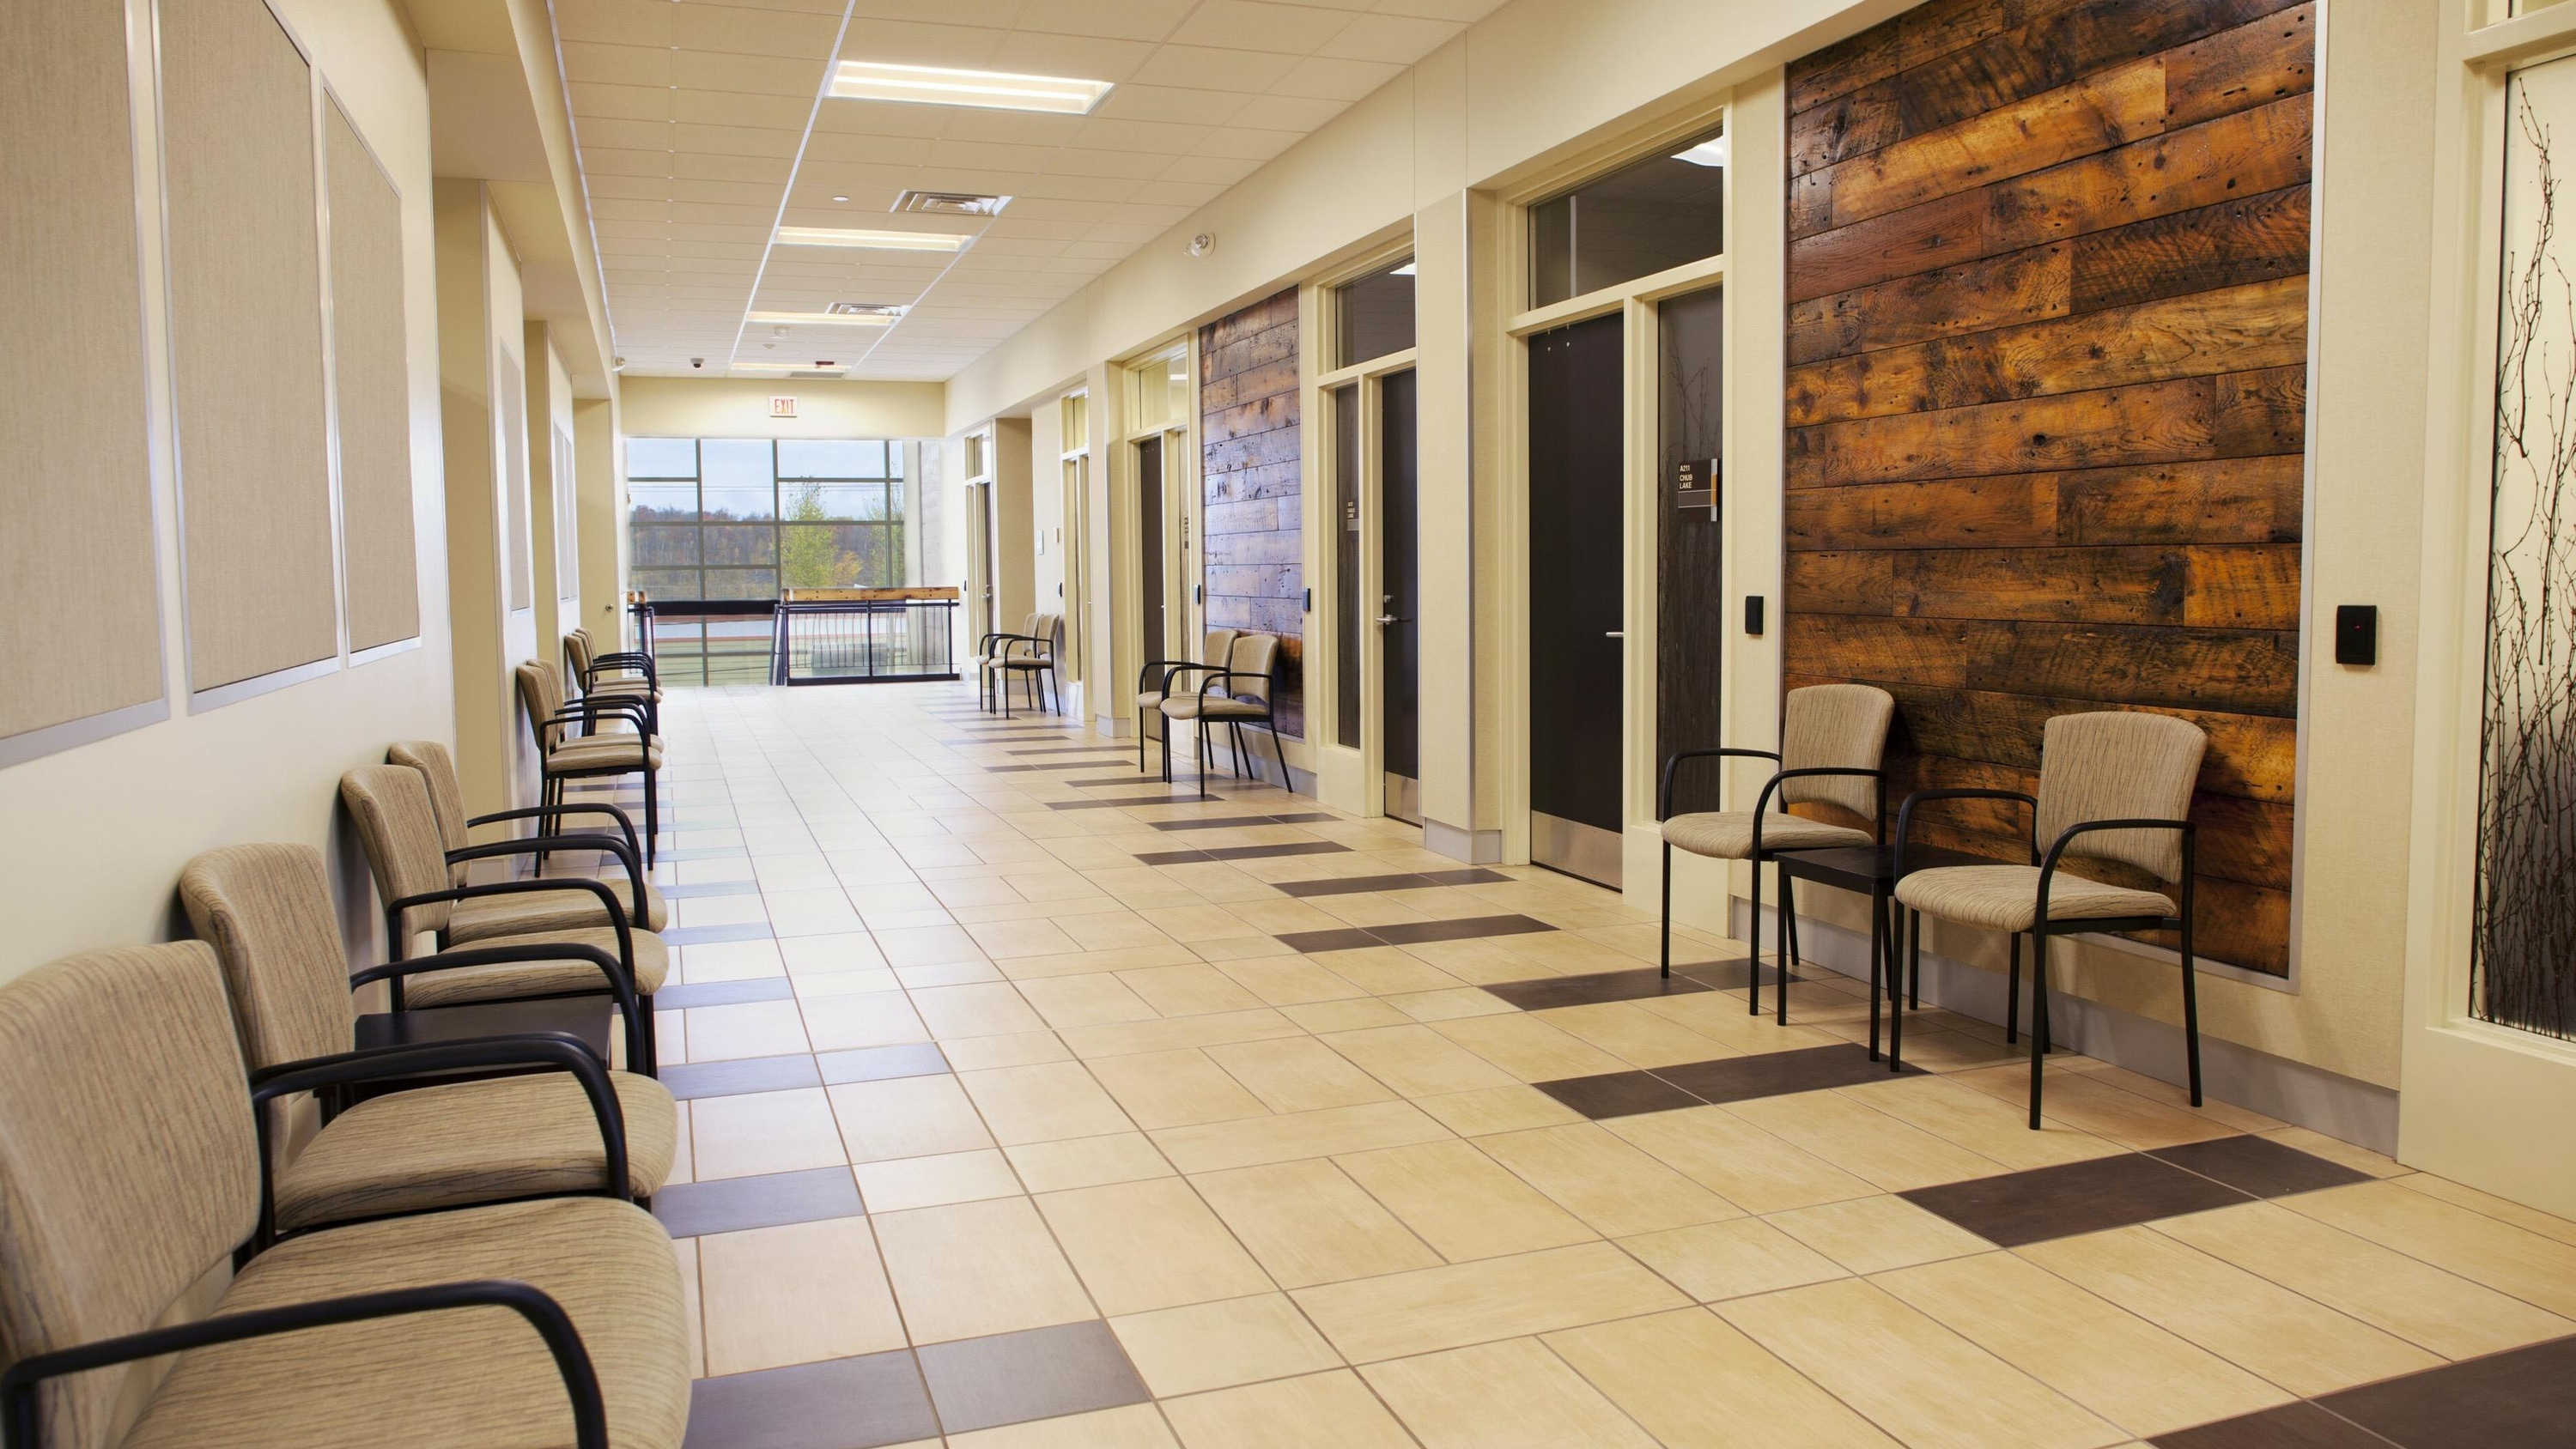 Carlton county health and human services3